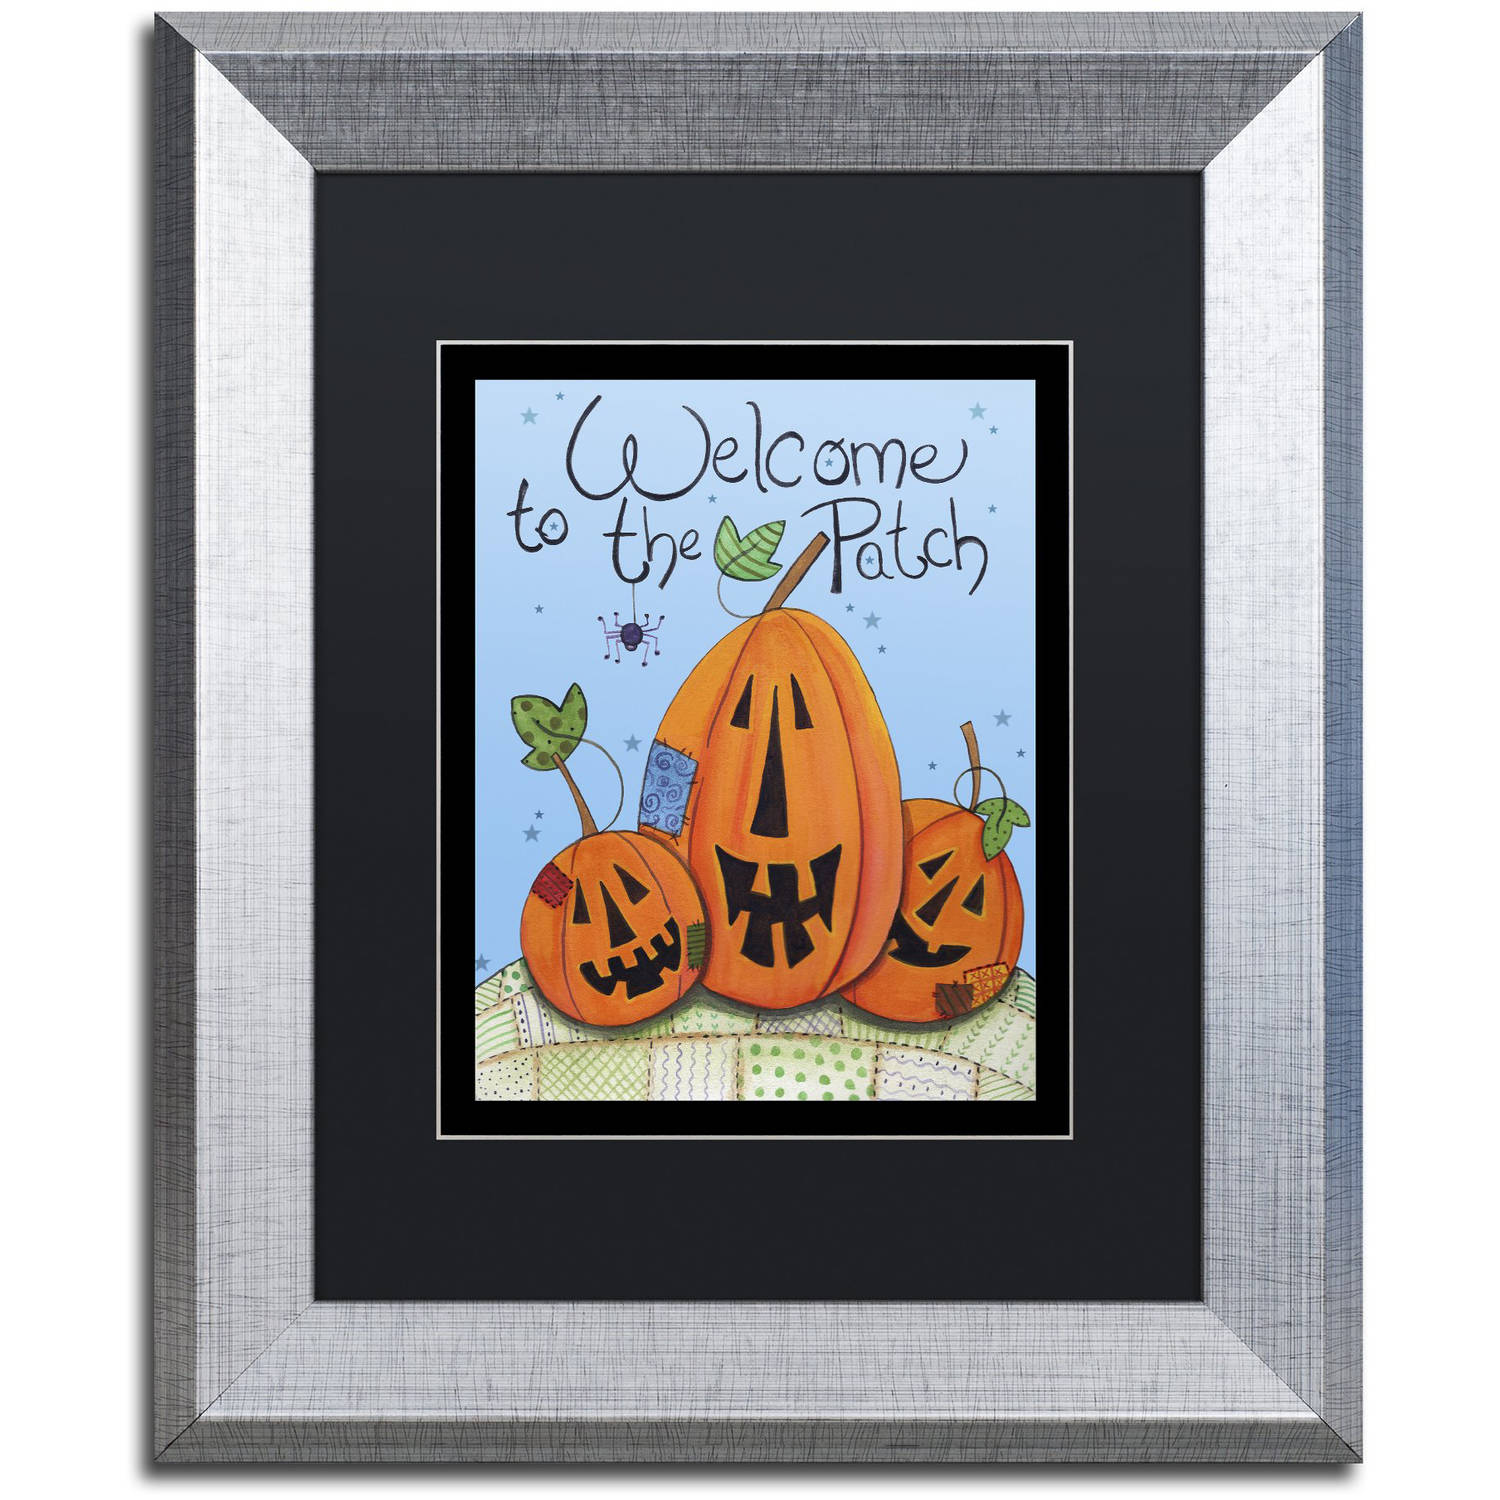 """Trademark Fine Art """"Welcome to the Patch"""" Canvas Art by Jennifer Nilsson, Black Matte, Silver Frame"""